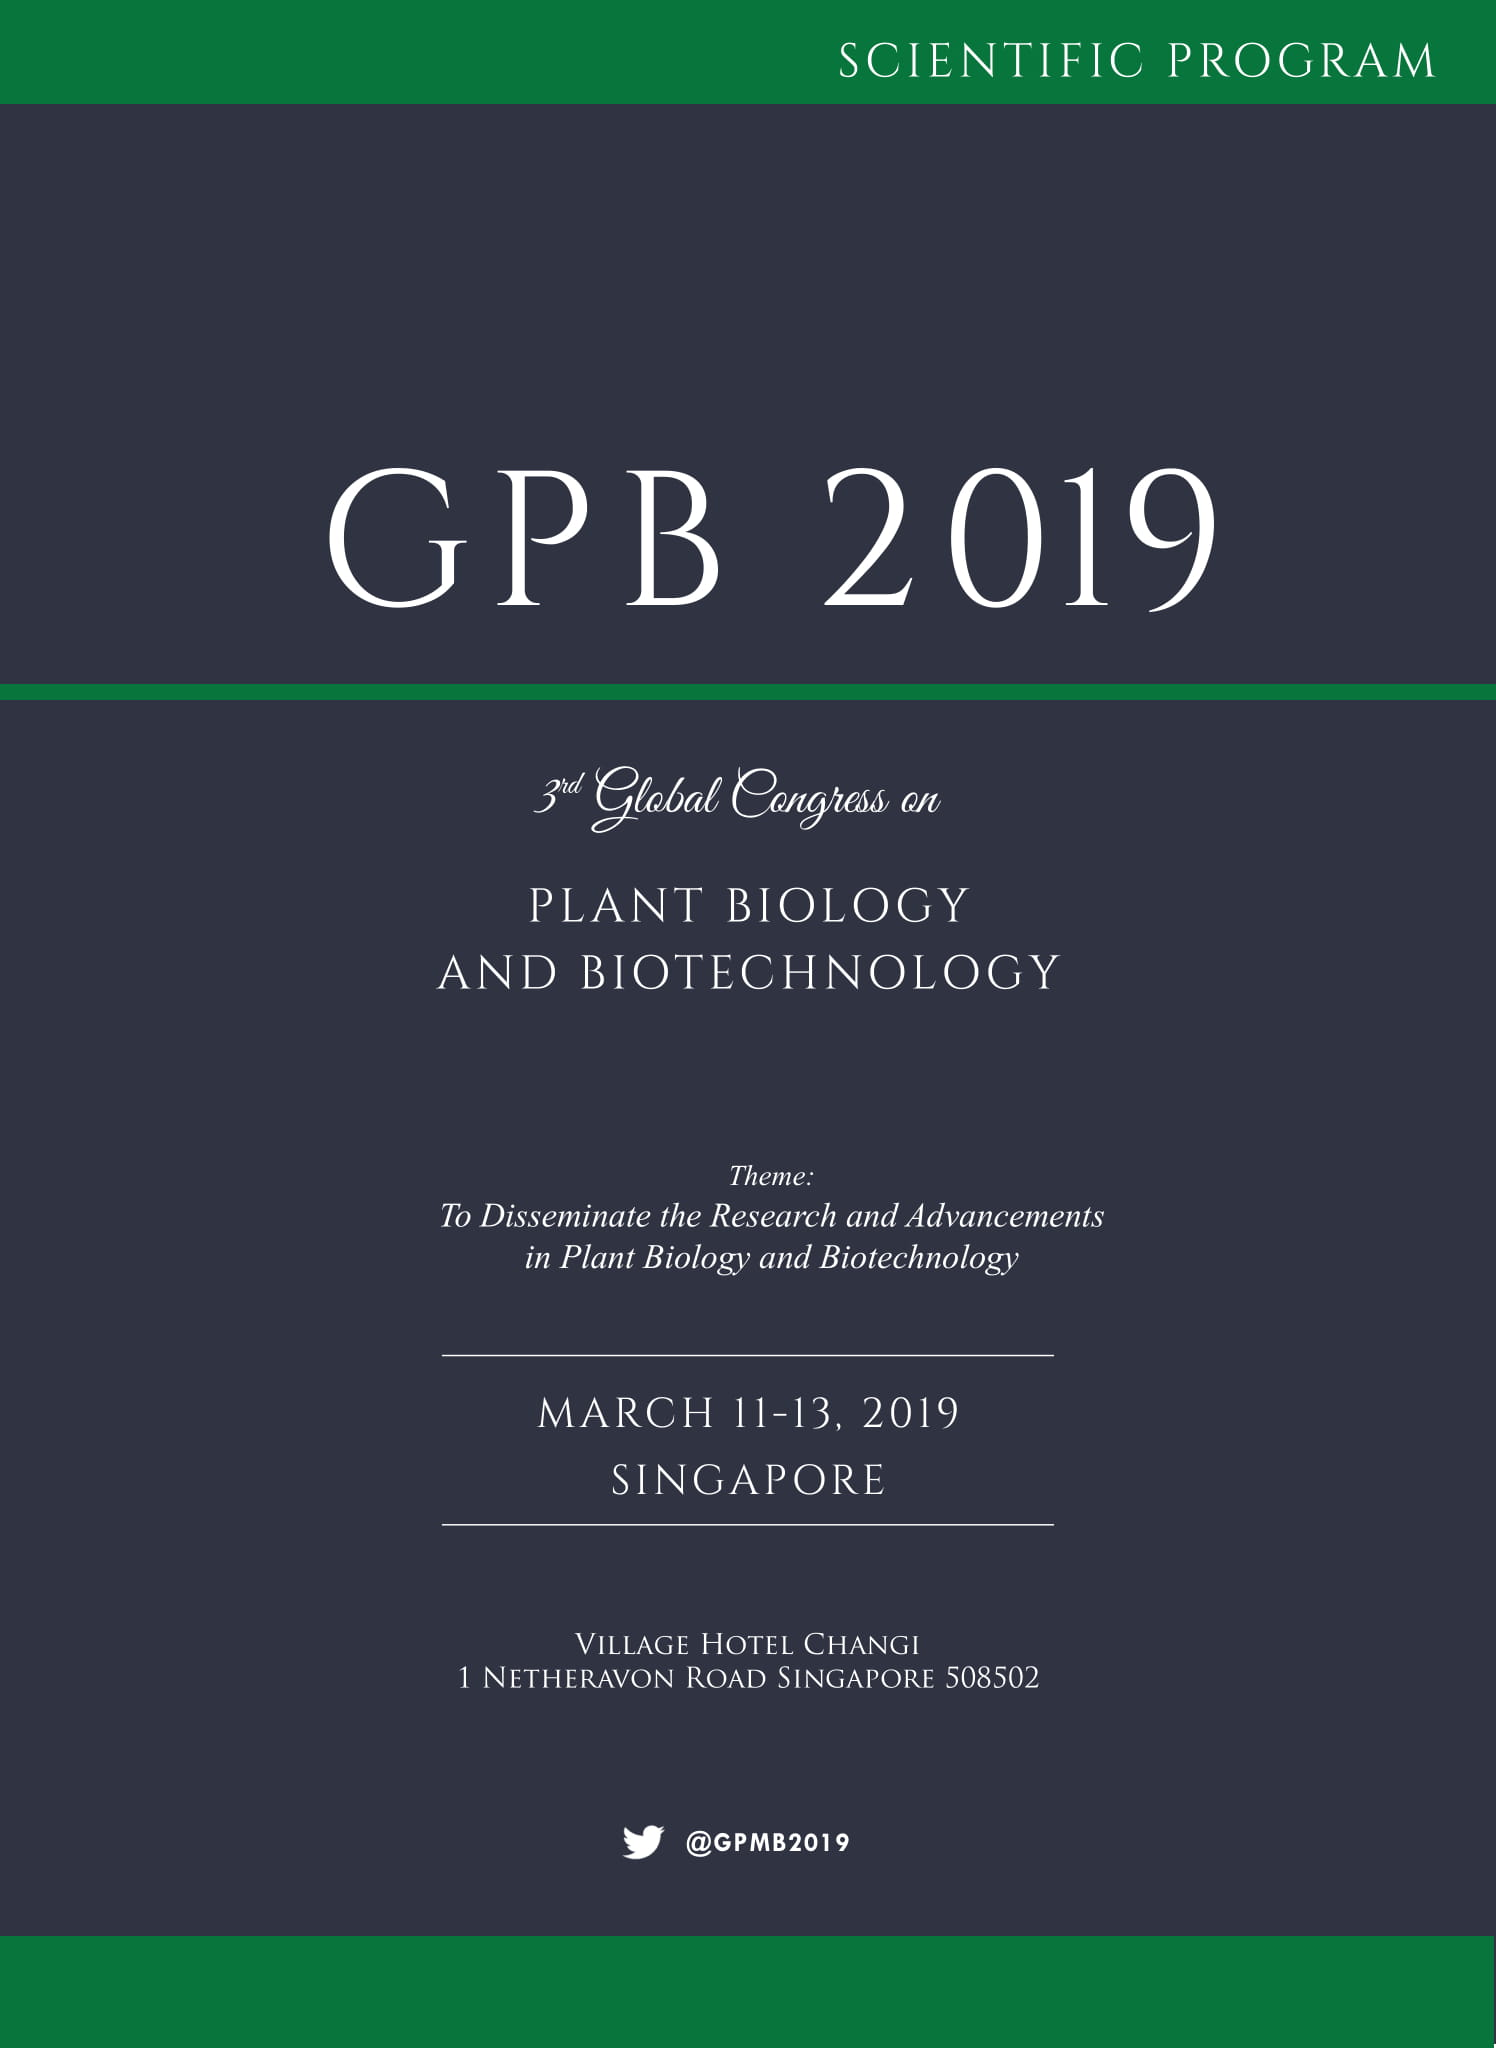 3rd Global congress on Plant Biology and Biotechnology